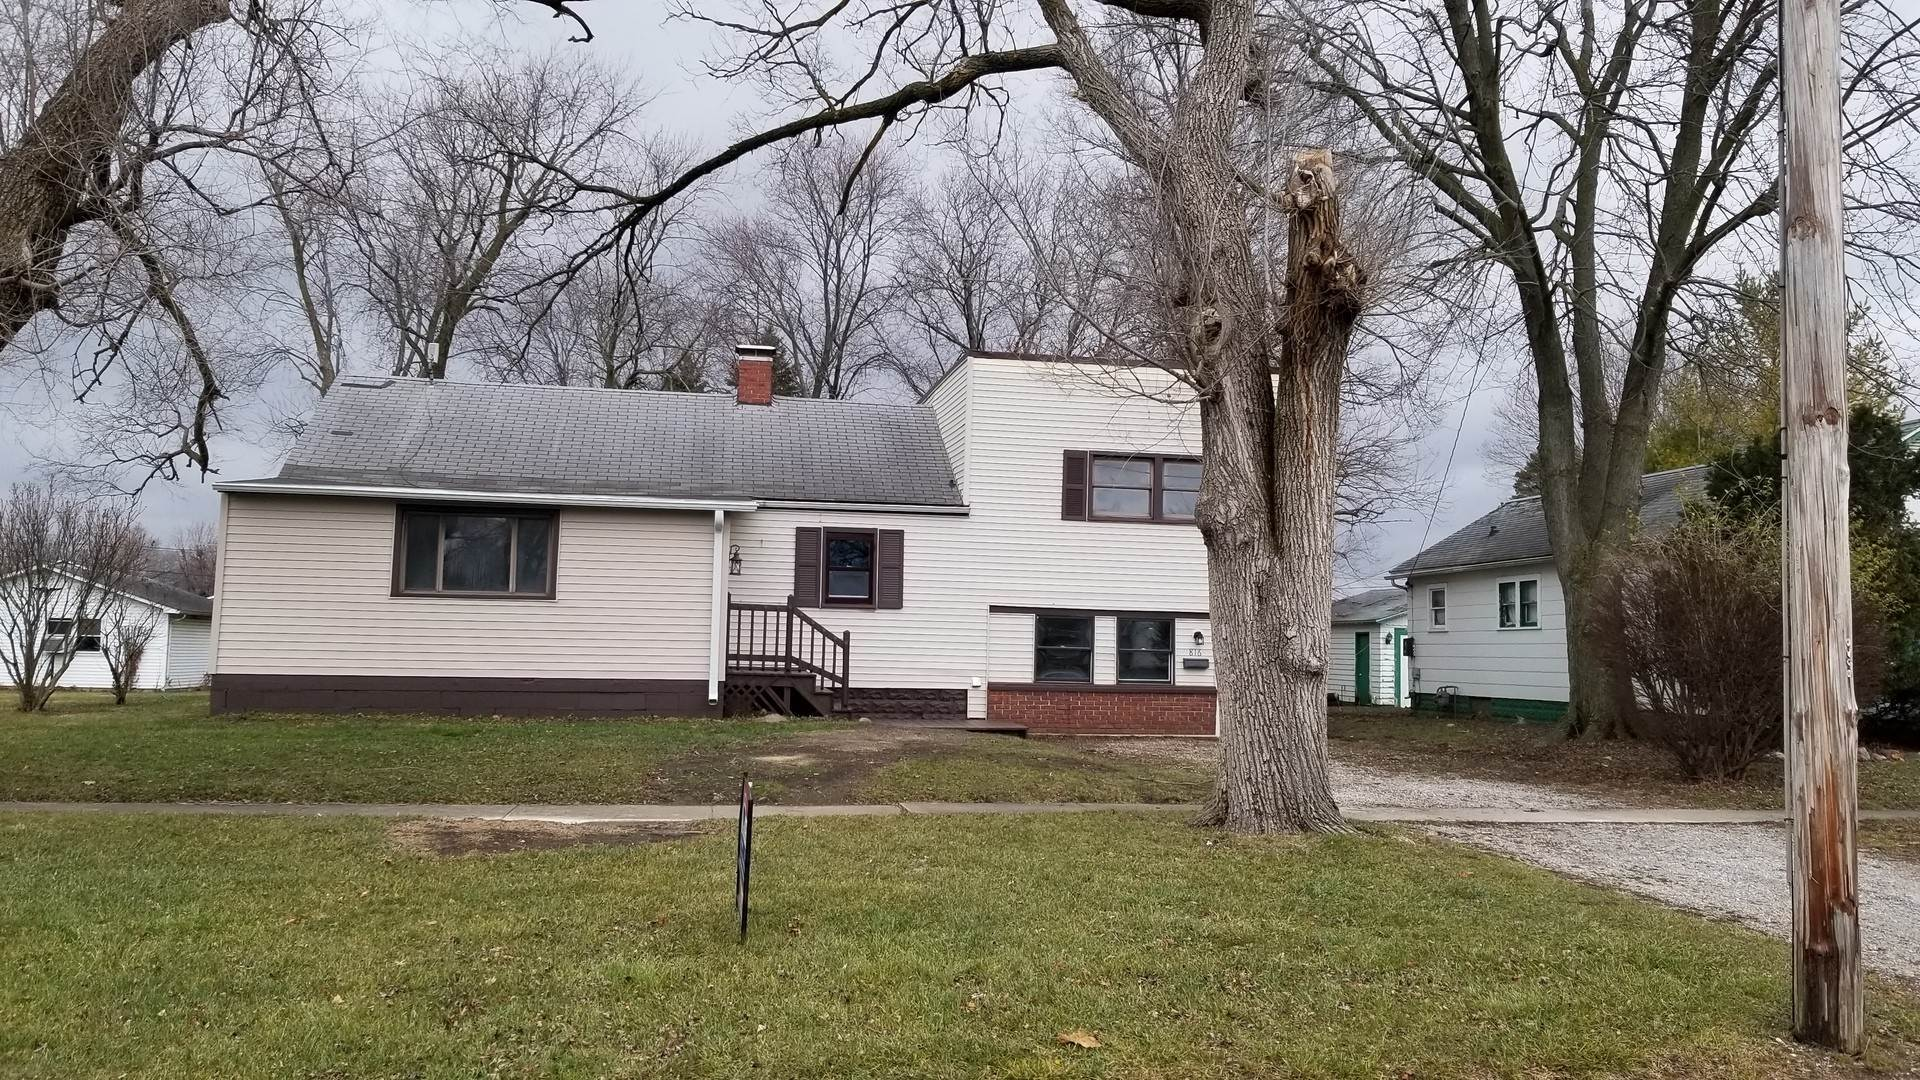 Single Family Homes for Sale at 816 W Washington Street Hoopeston, Illinois 60942 United States